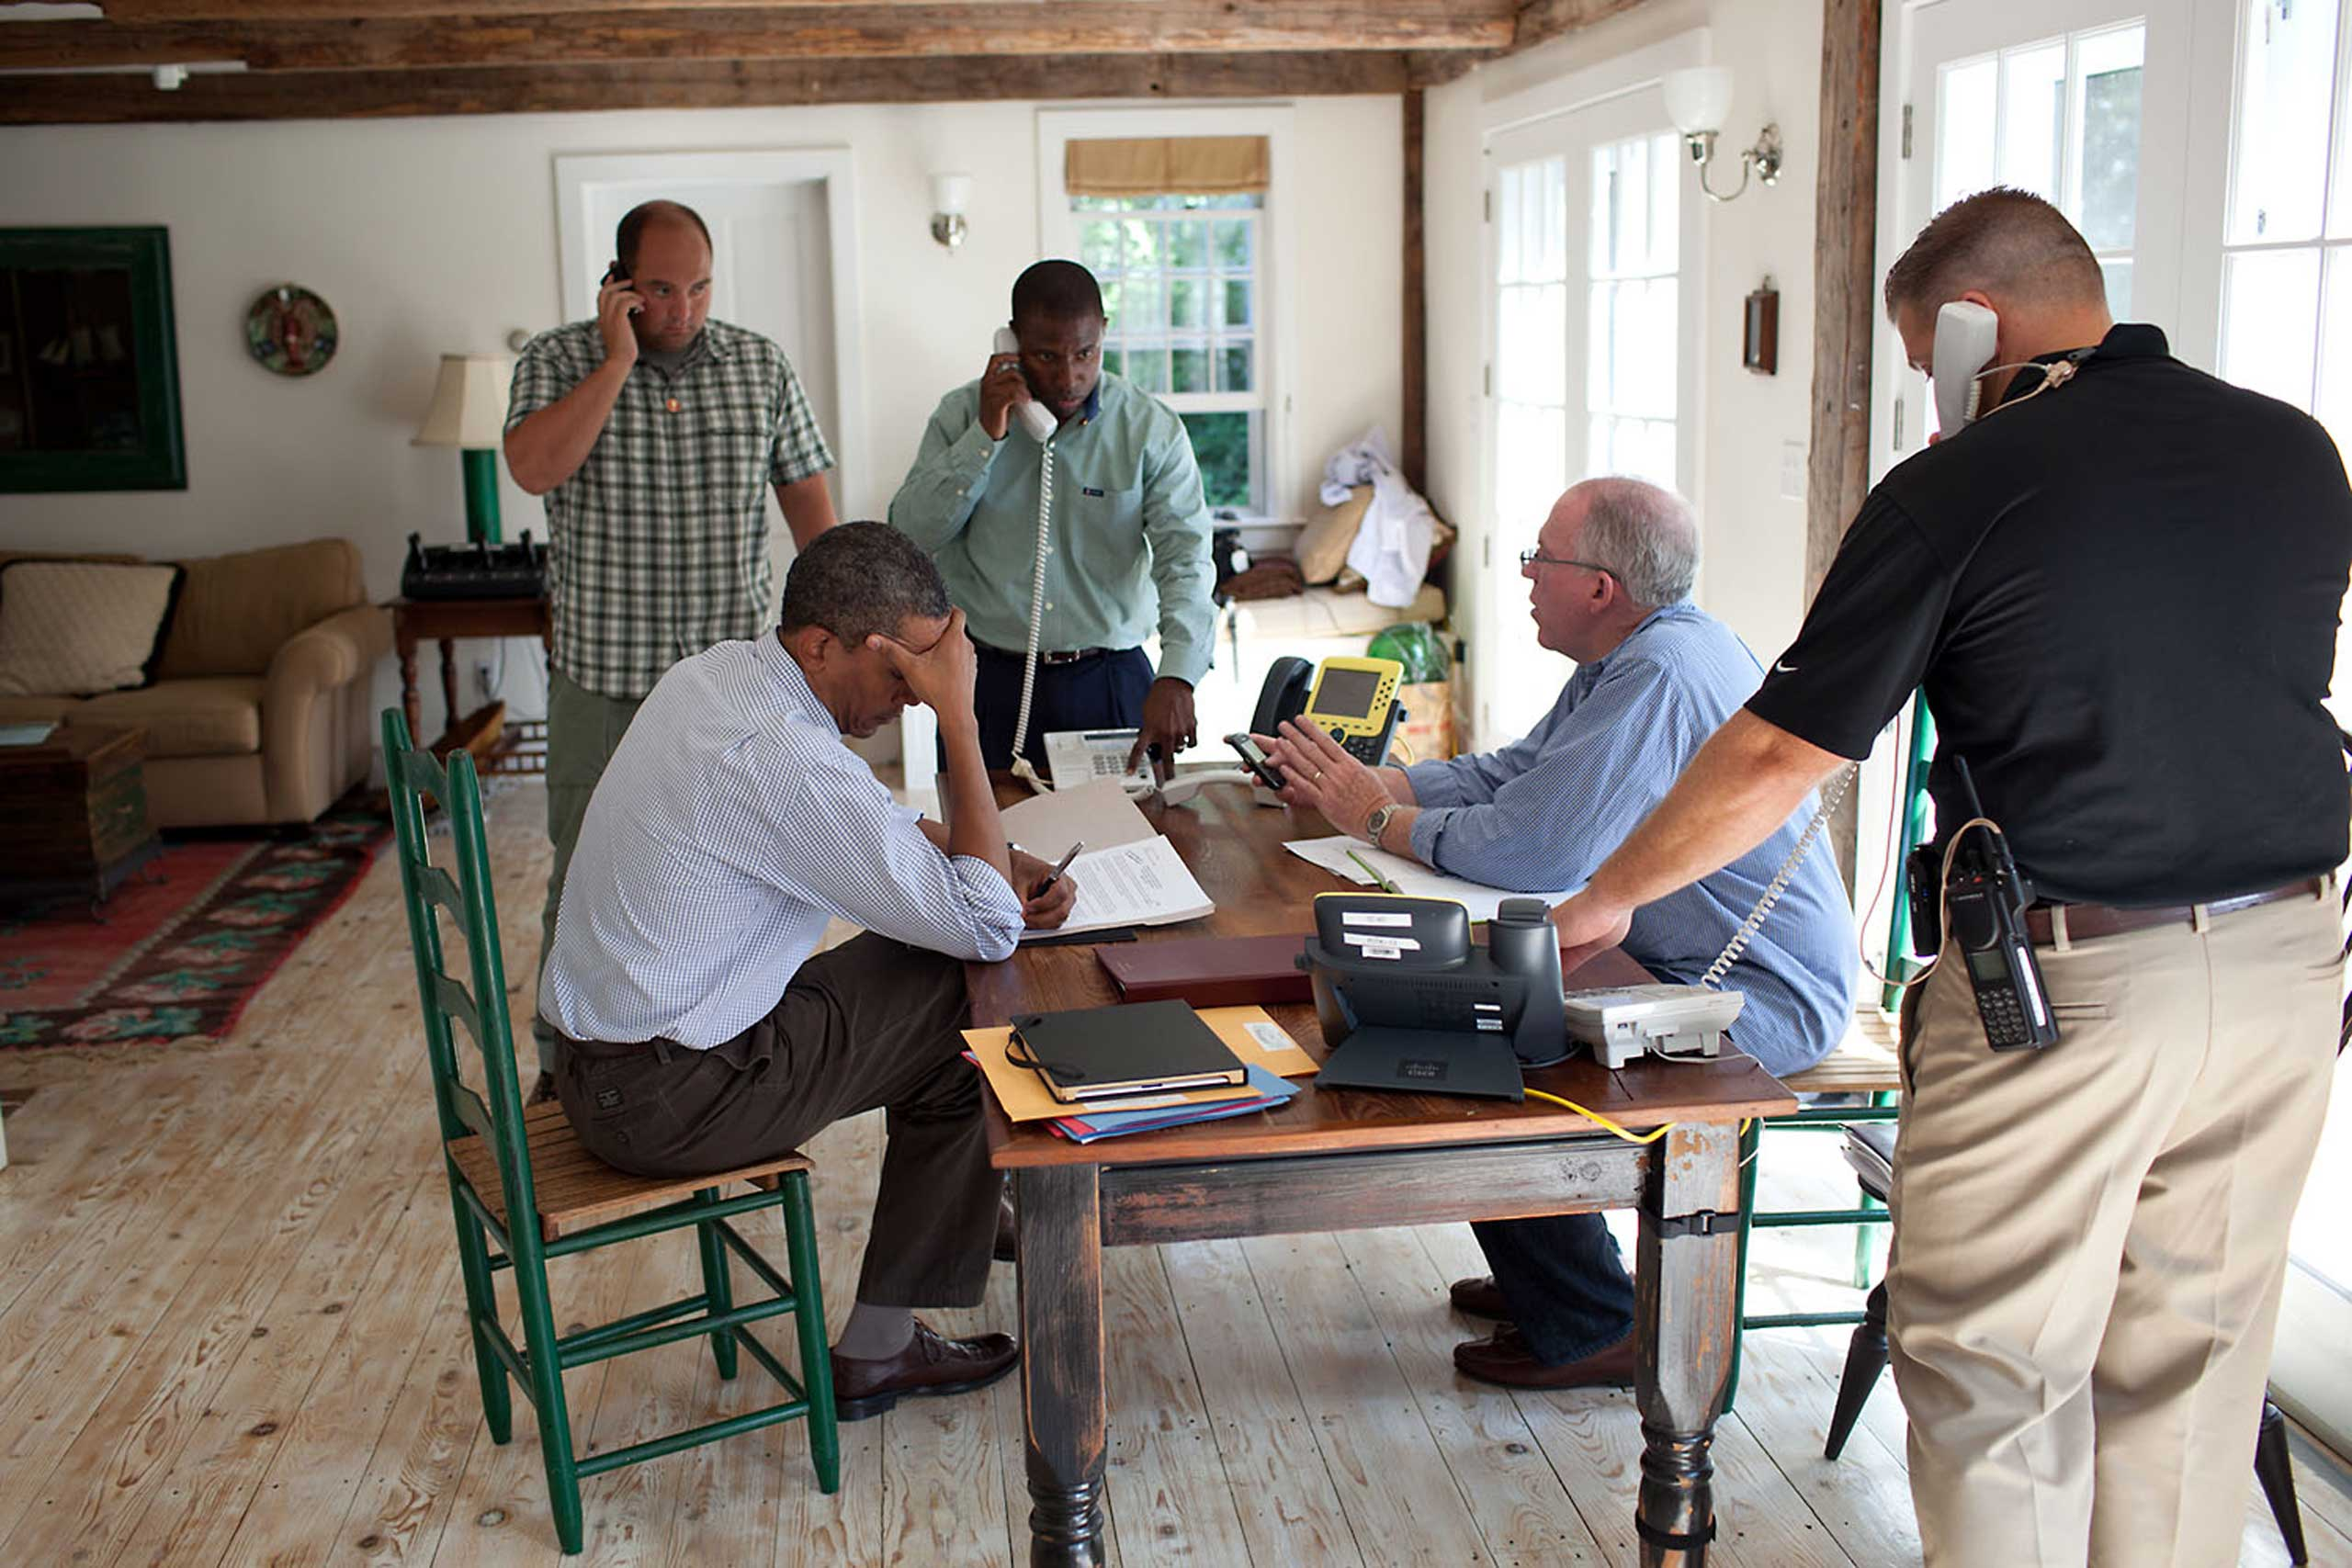 A former President once said, 'Presidents don't get vacations, they just get a change of scenery.' We were on 'vacation' in Martha's Vineyard and the President was monitoring Hurricane Irene with John Brennan, Assistant to the President for Homeland Security and Counterterrorism, at right in light blue shirt, on Aug. 26, 2011. They were waiting for a conference call on the hurricane with affected governors and mayors.